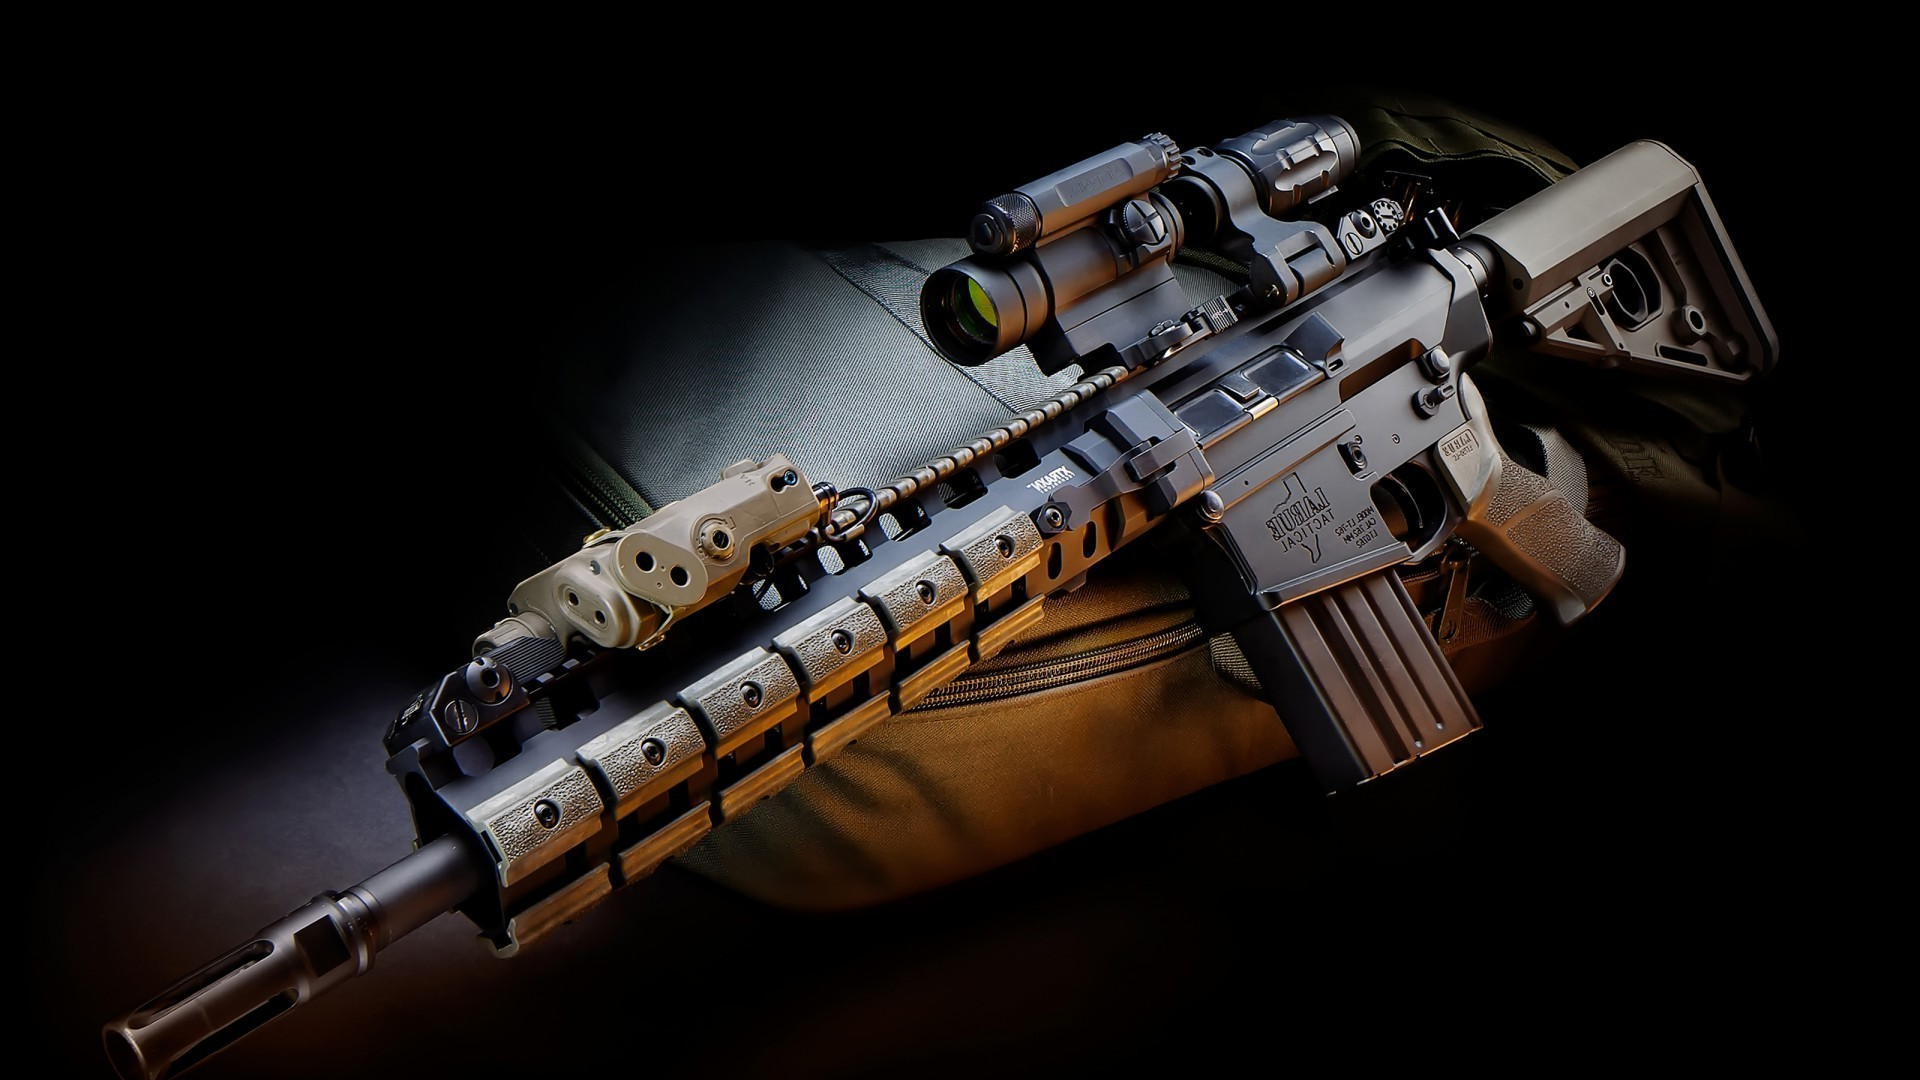 Gun Wallpaper Android Download: Assault Rifle. Android Wallpapers For Free